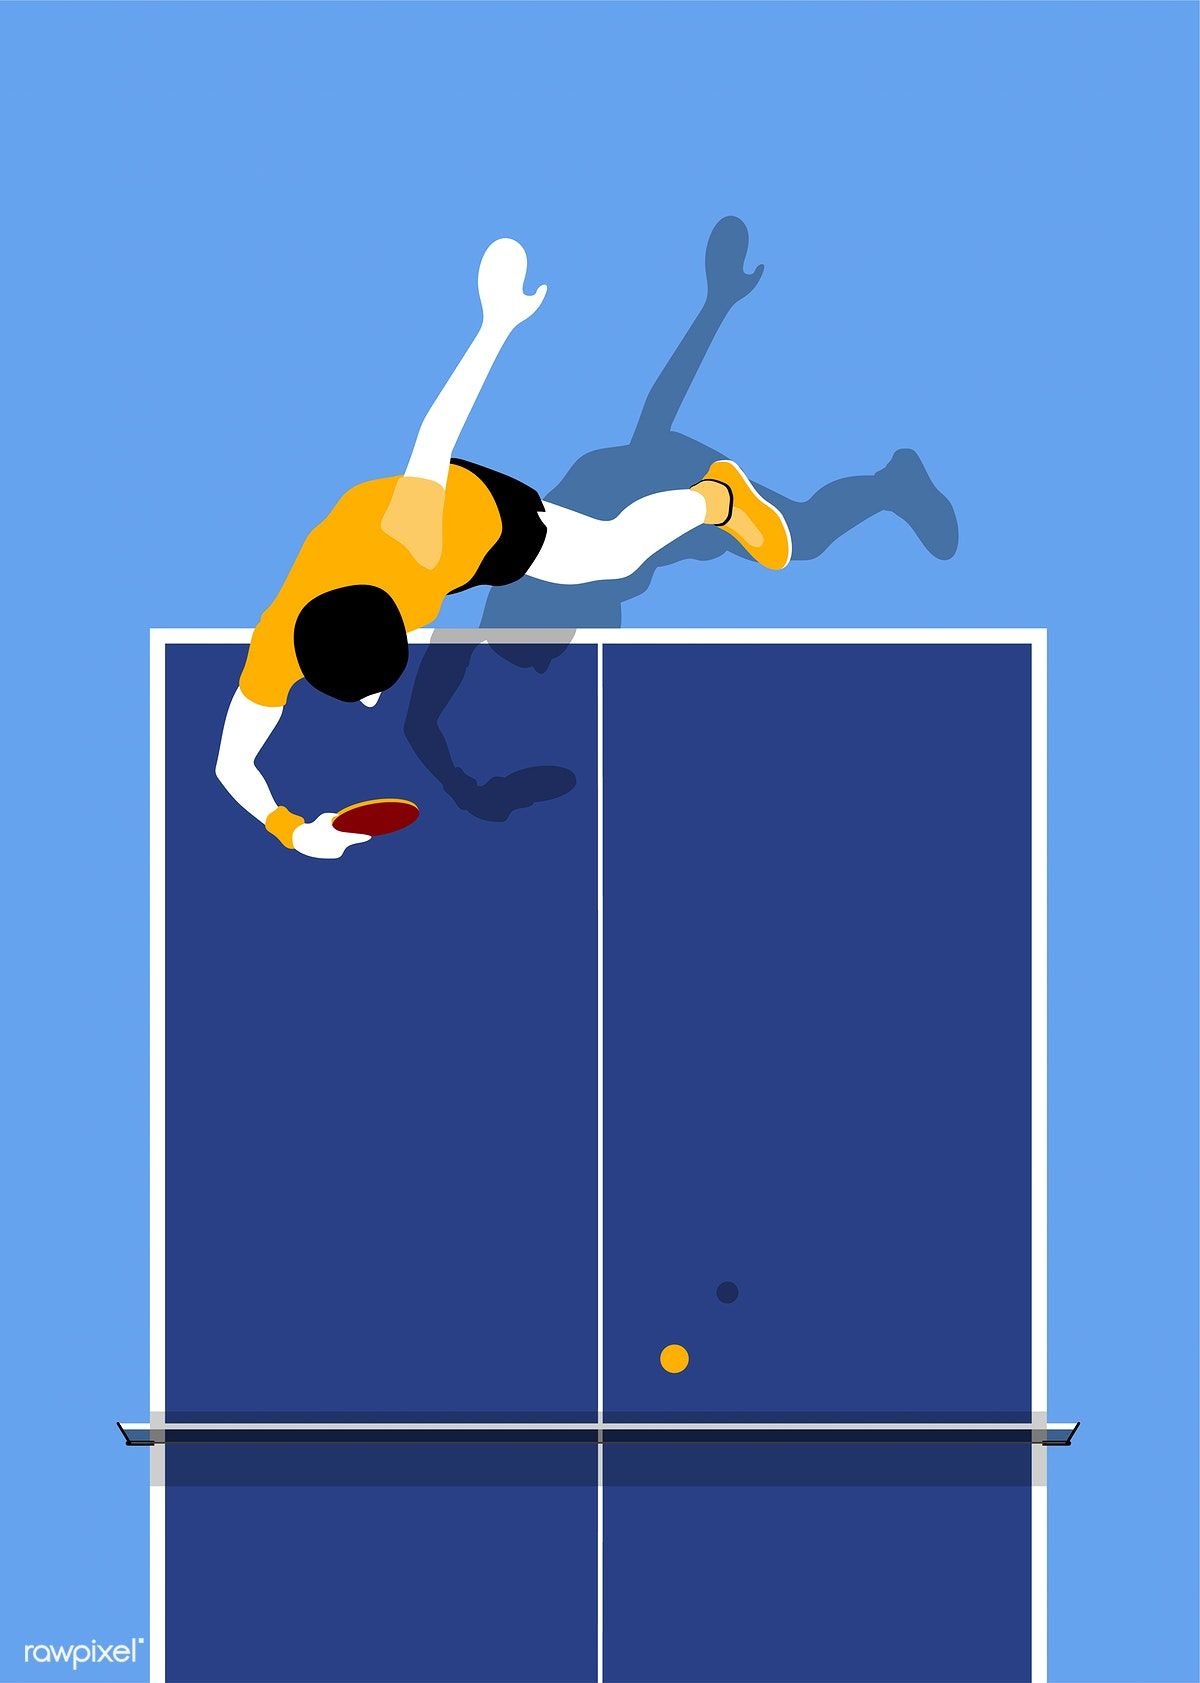 Aerial View Of A Table Tennis Table Free Image By Rawpixel Com Table Tennis Sport Illustration Free Illustrations